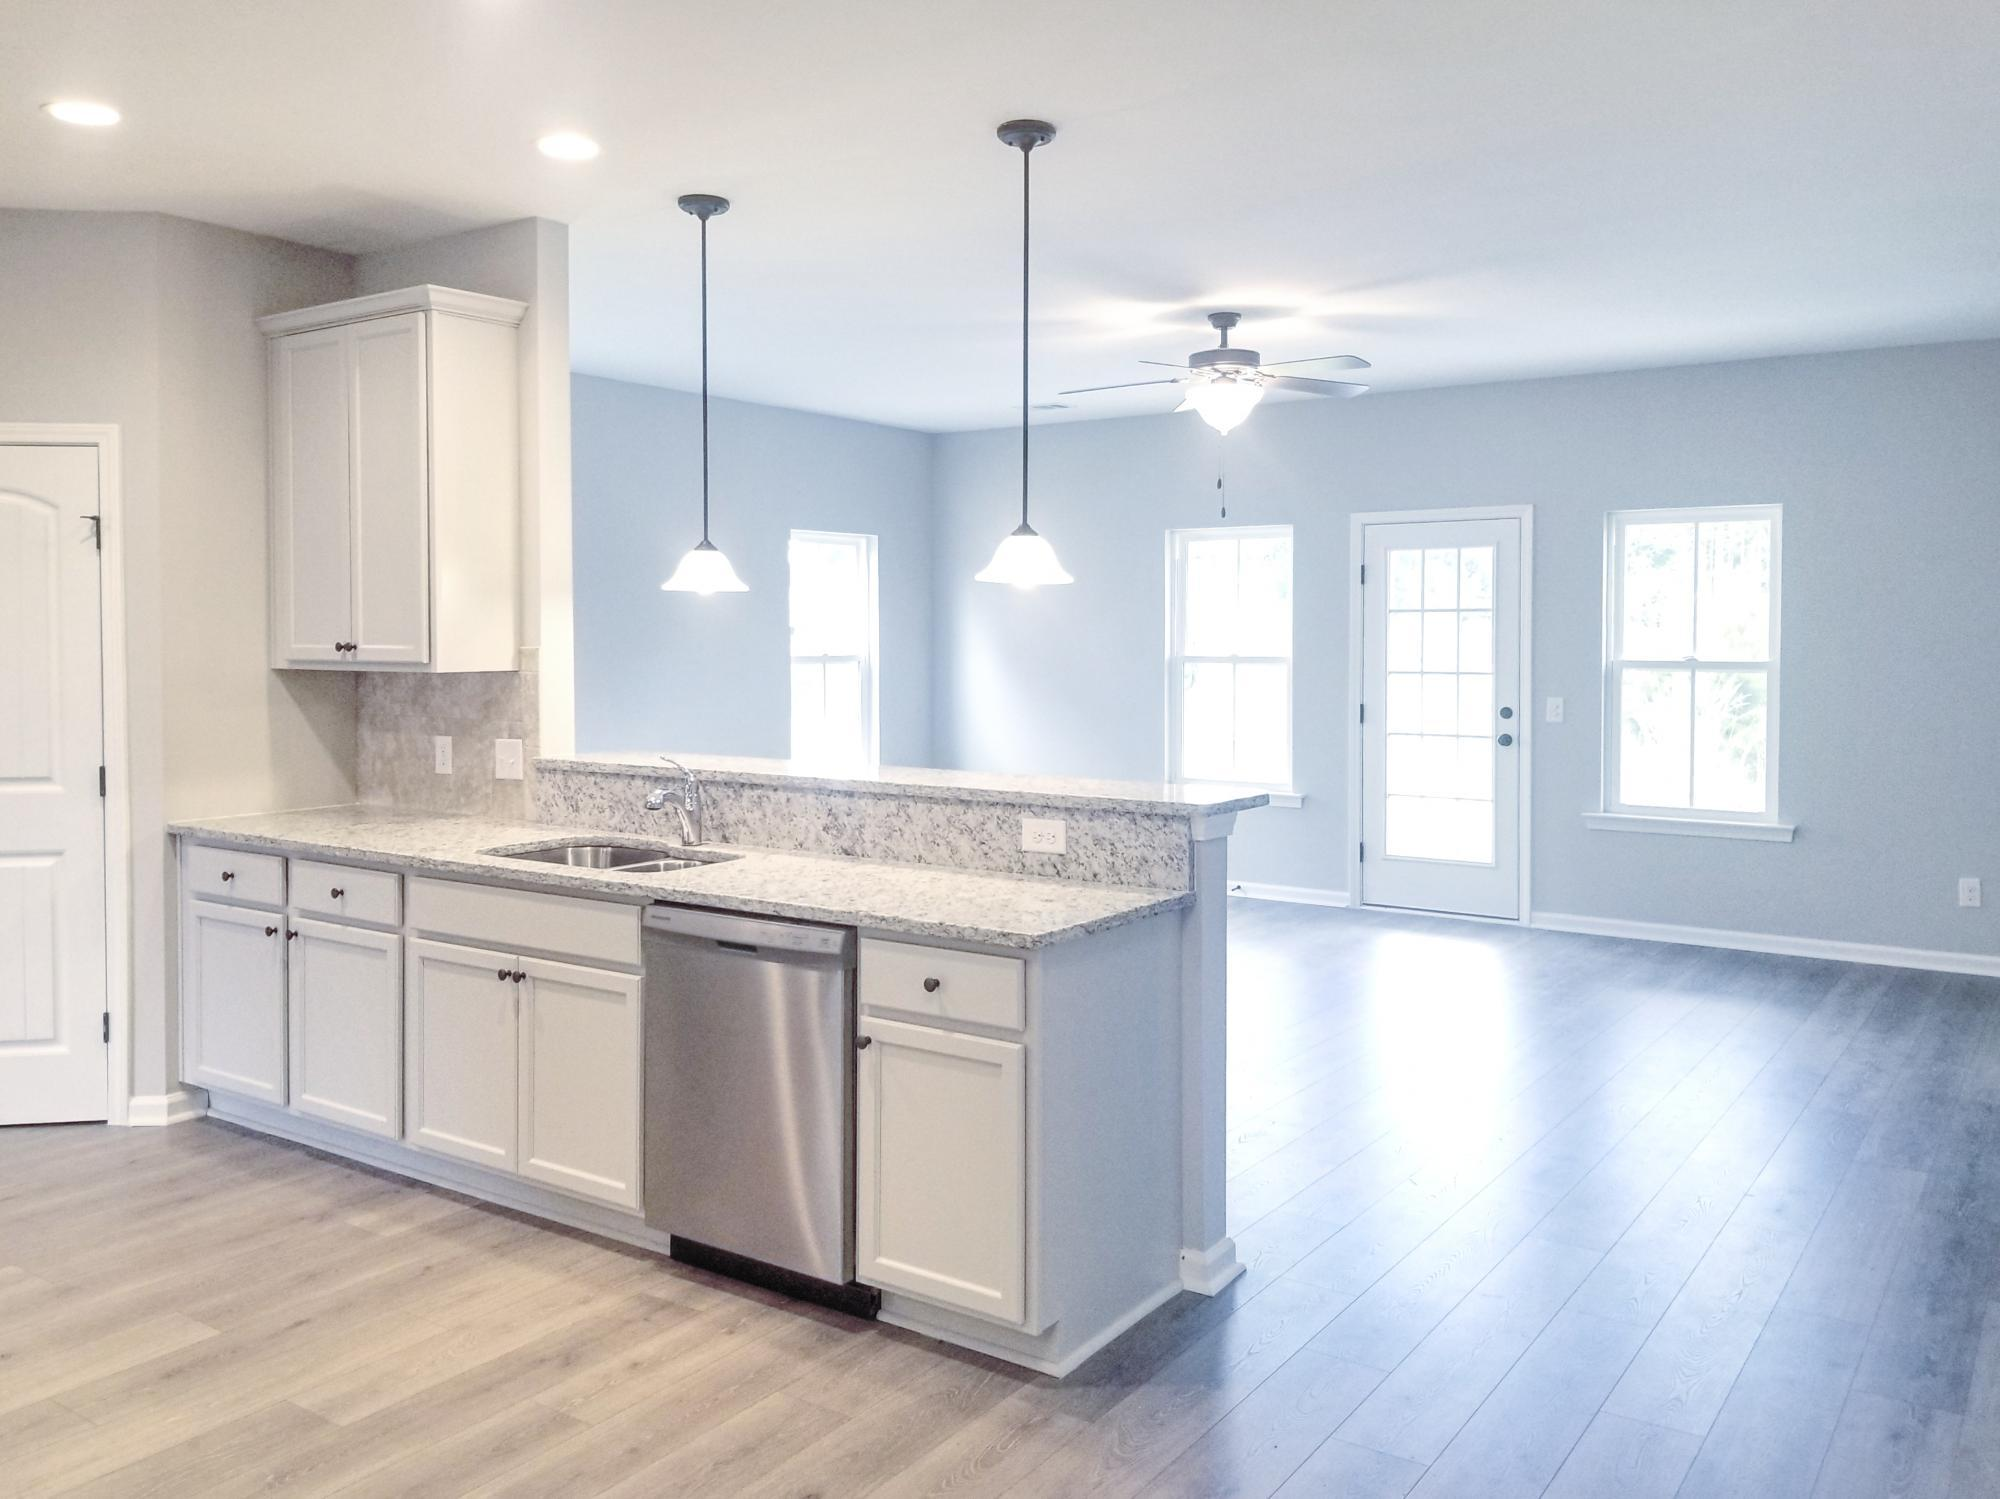 Kitchen featured in the Walton By Konter Quality Homes in Savannah, GA